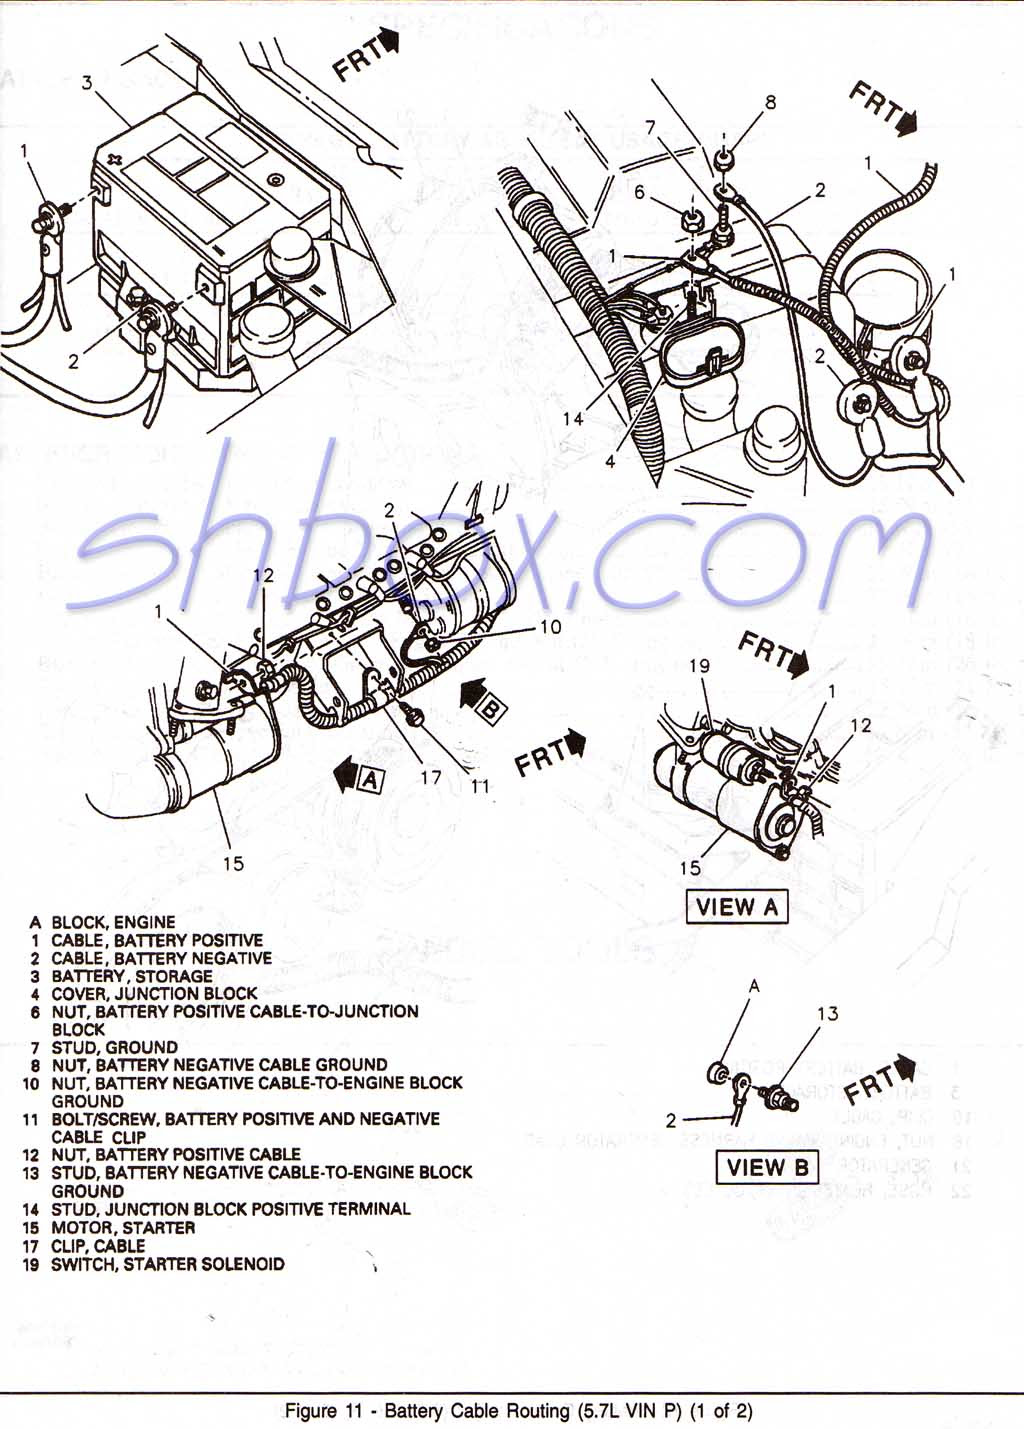 hight resolution of also 1996 v6 camaro battery cable routing also diagram for 1995 chevy wiring diagram rows